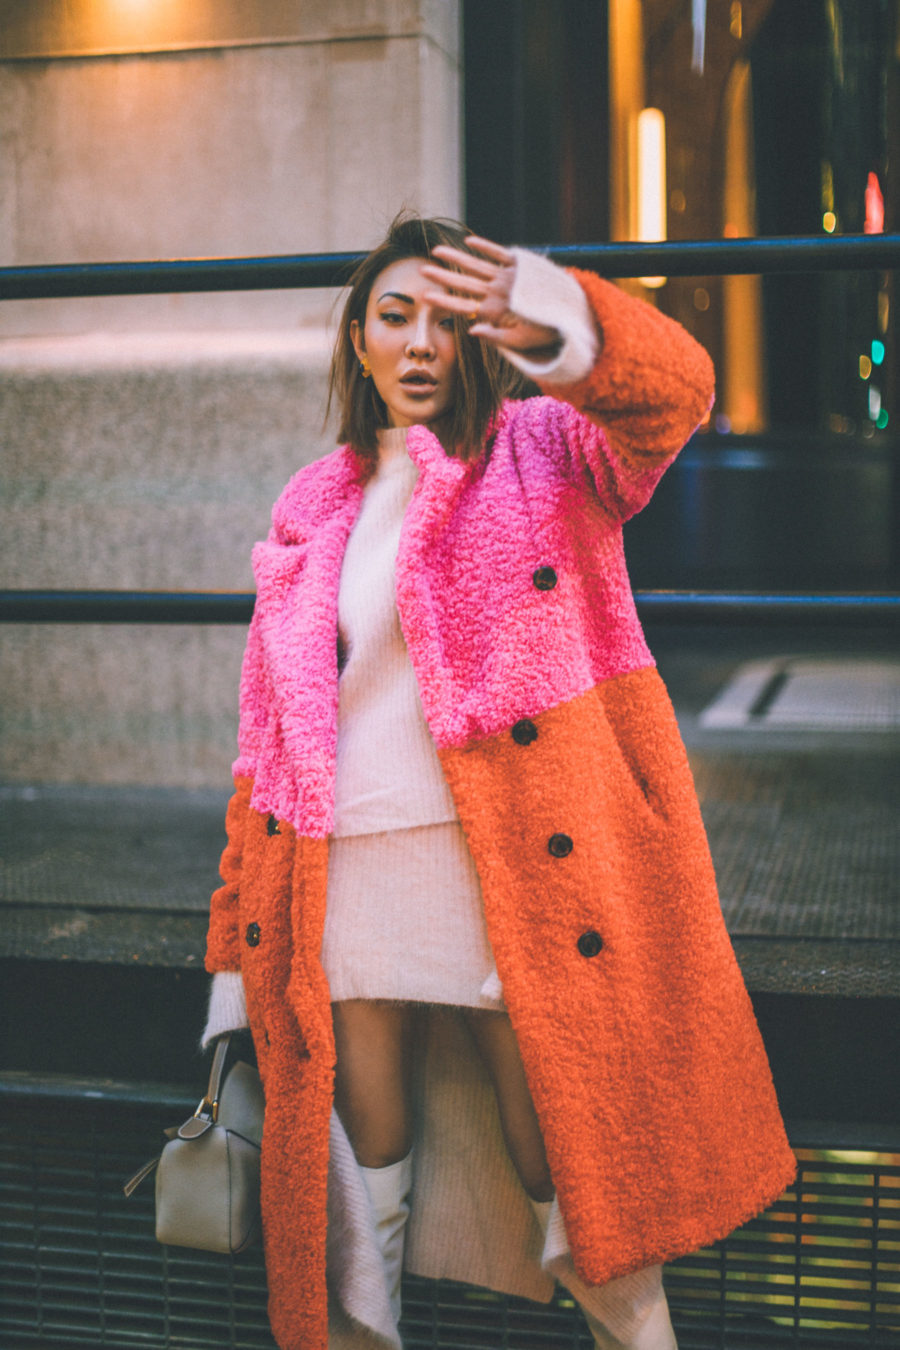 fashion blogger jessica wang wears festive winter outfit with a colorblock coat and white boots // Notjessfashion.com